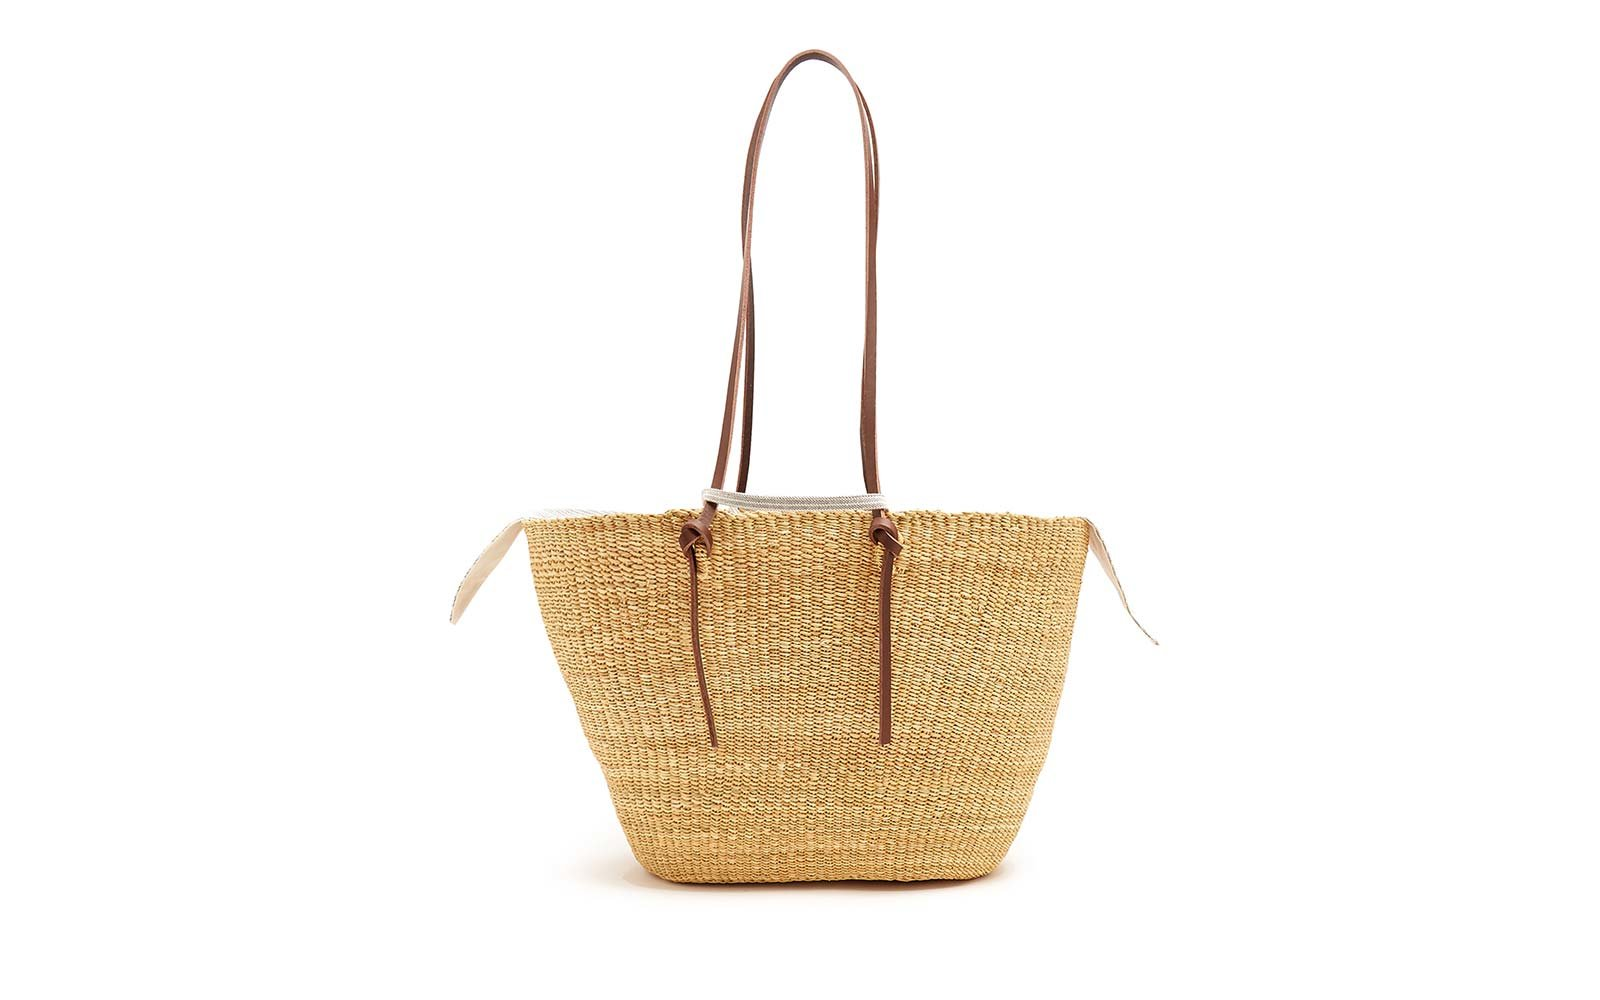 Natalie Kingham Matches Fashion Muun beach bag